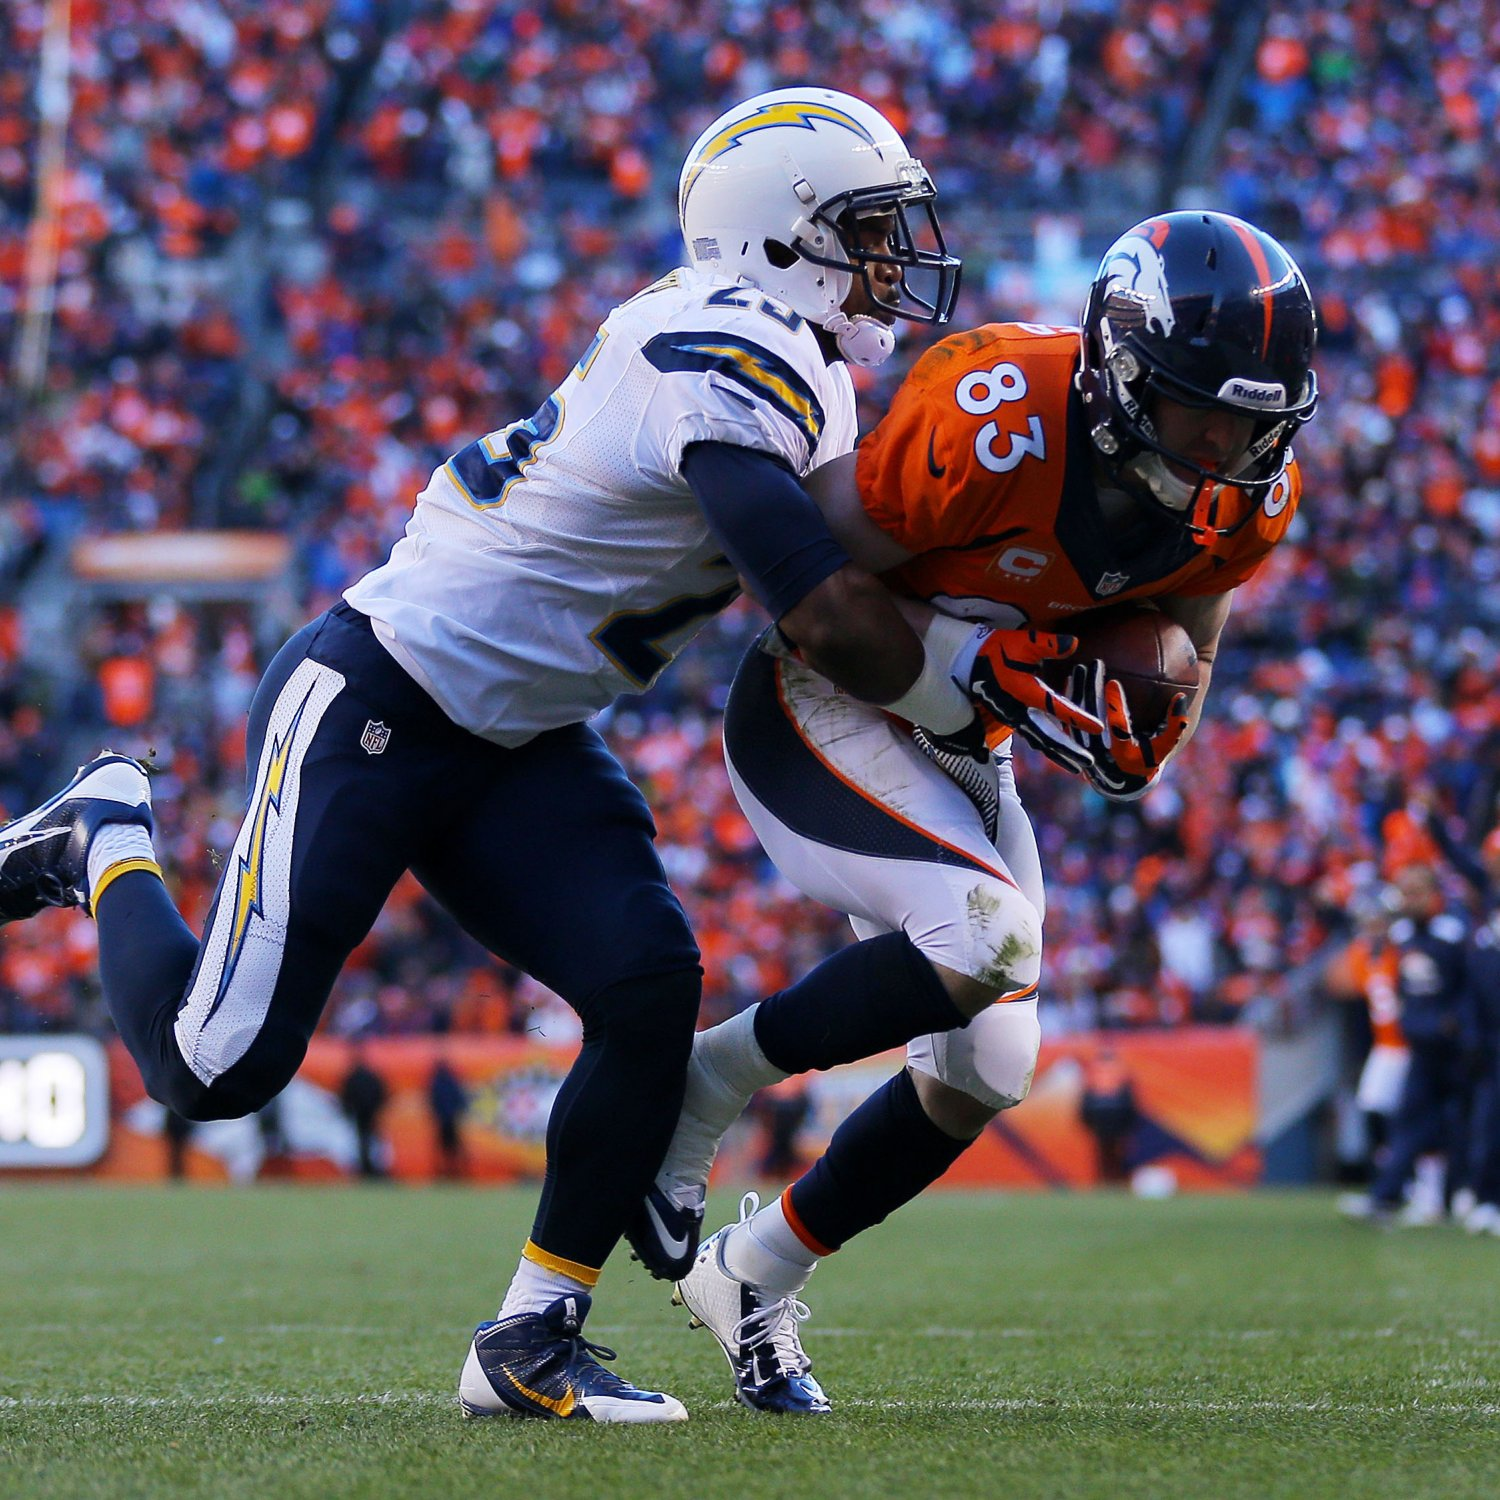 San Diego Chargers Denver Broncos Score: Refs Make Confusing Pass Interference Call In San Diego Vs